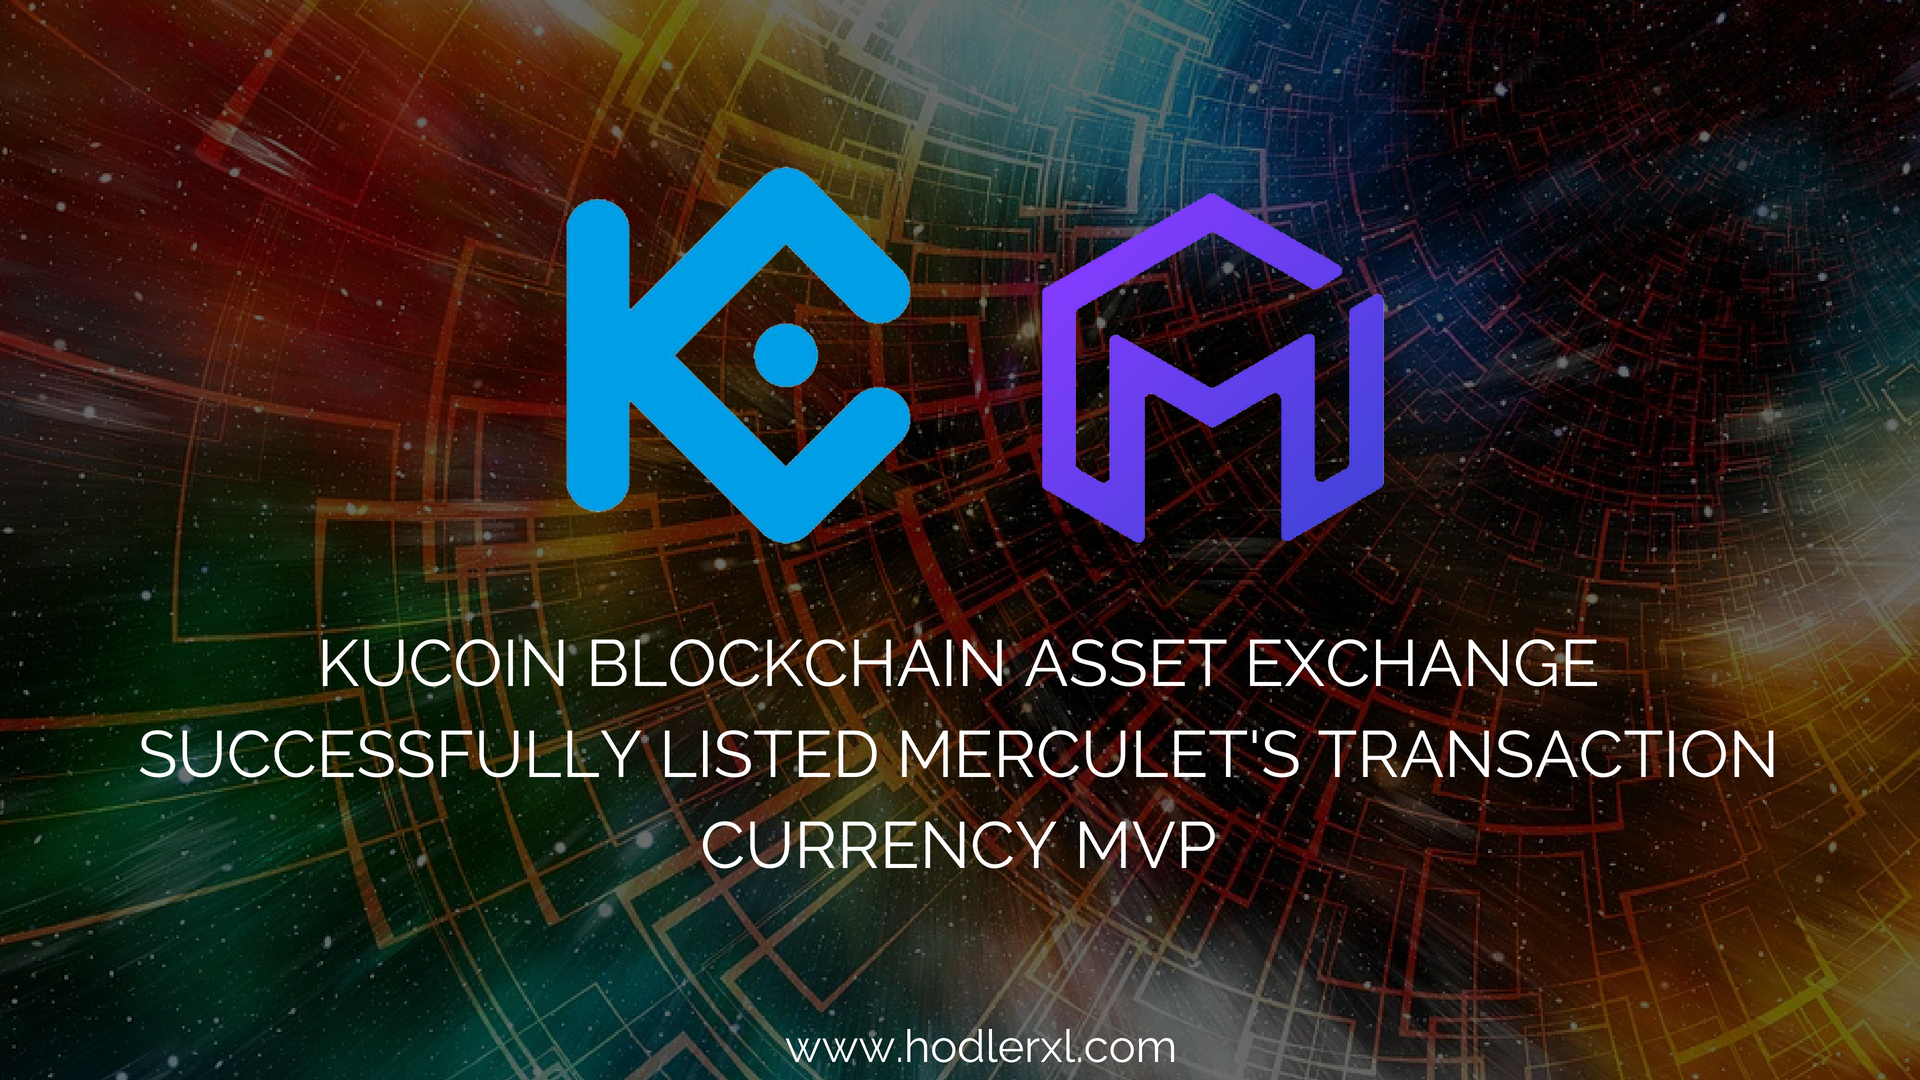 KuCoin Blockchain Asset Exchange Successfully Listed Merculet's Transaction Currency MVP